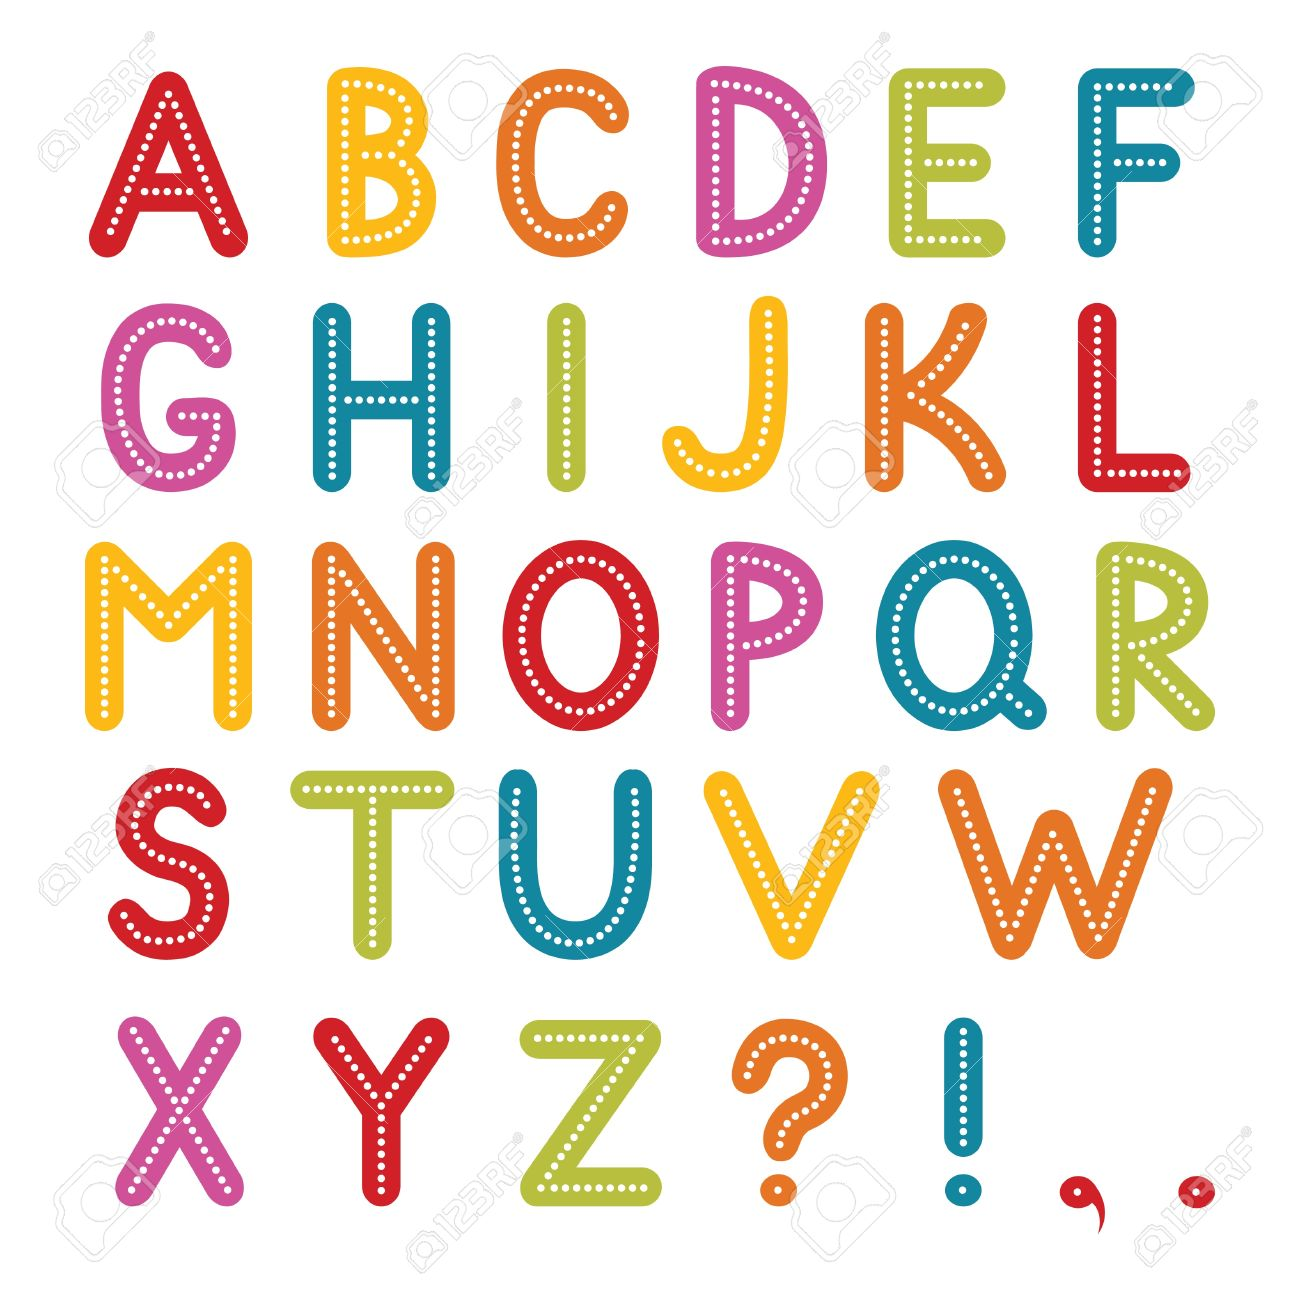 Alphabet Images font, a to z alphabet royalty free cliparts, vectors, and stock